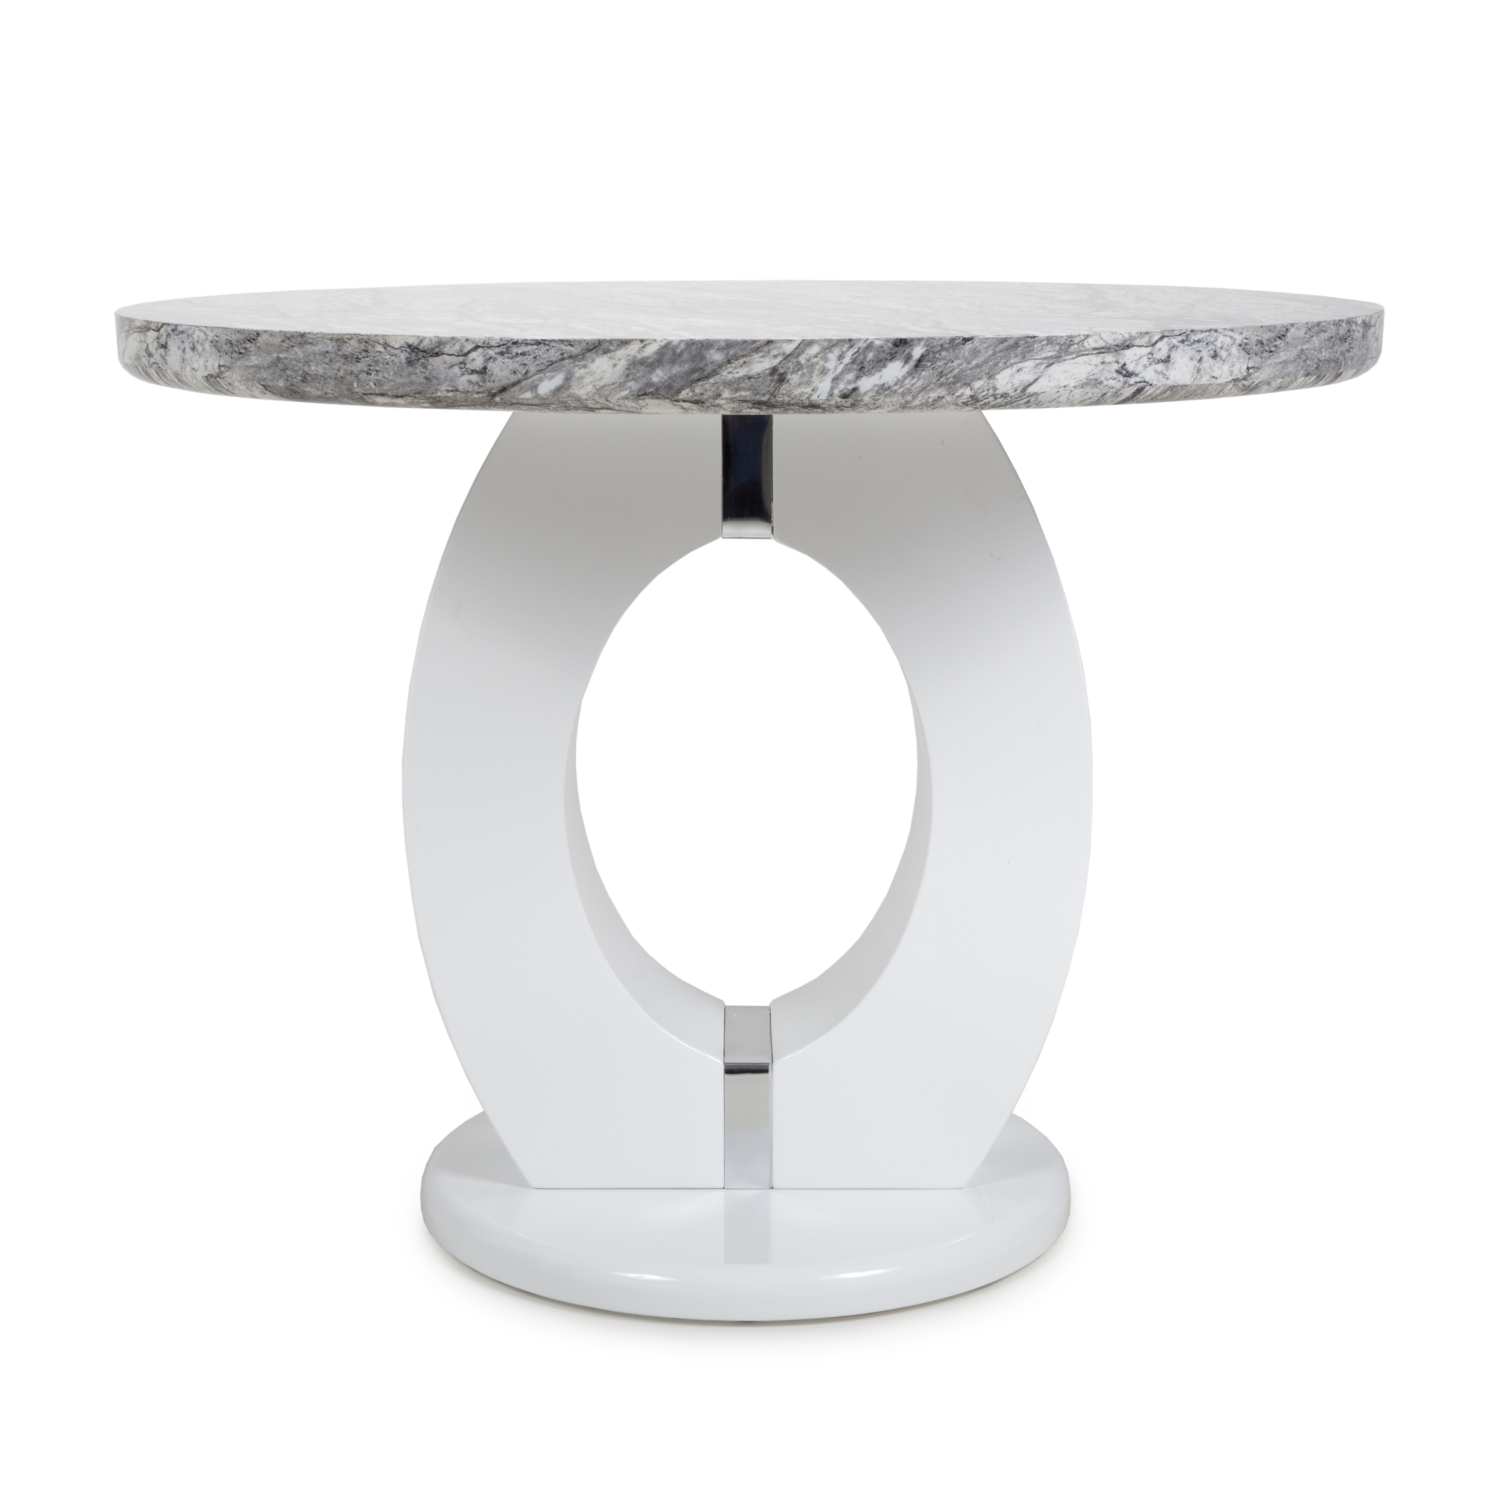 Nepal Grey Marble & White High Gloss 1m Round Dining Table